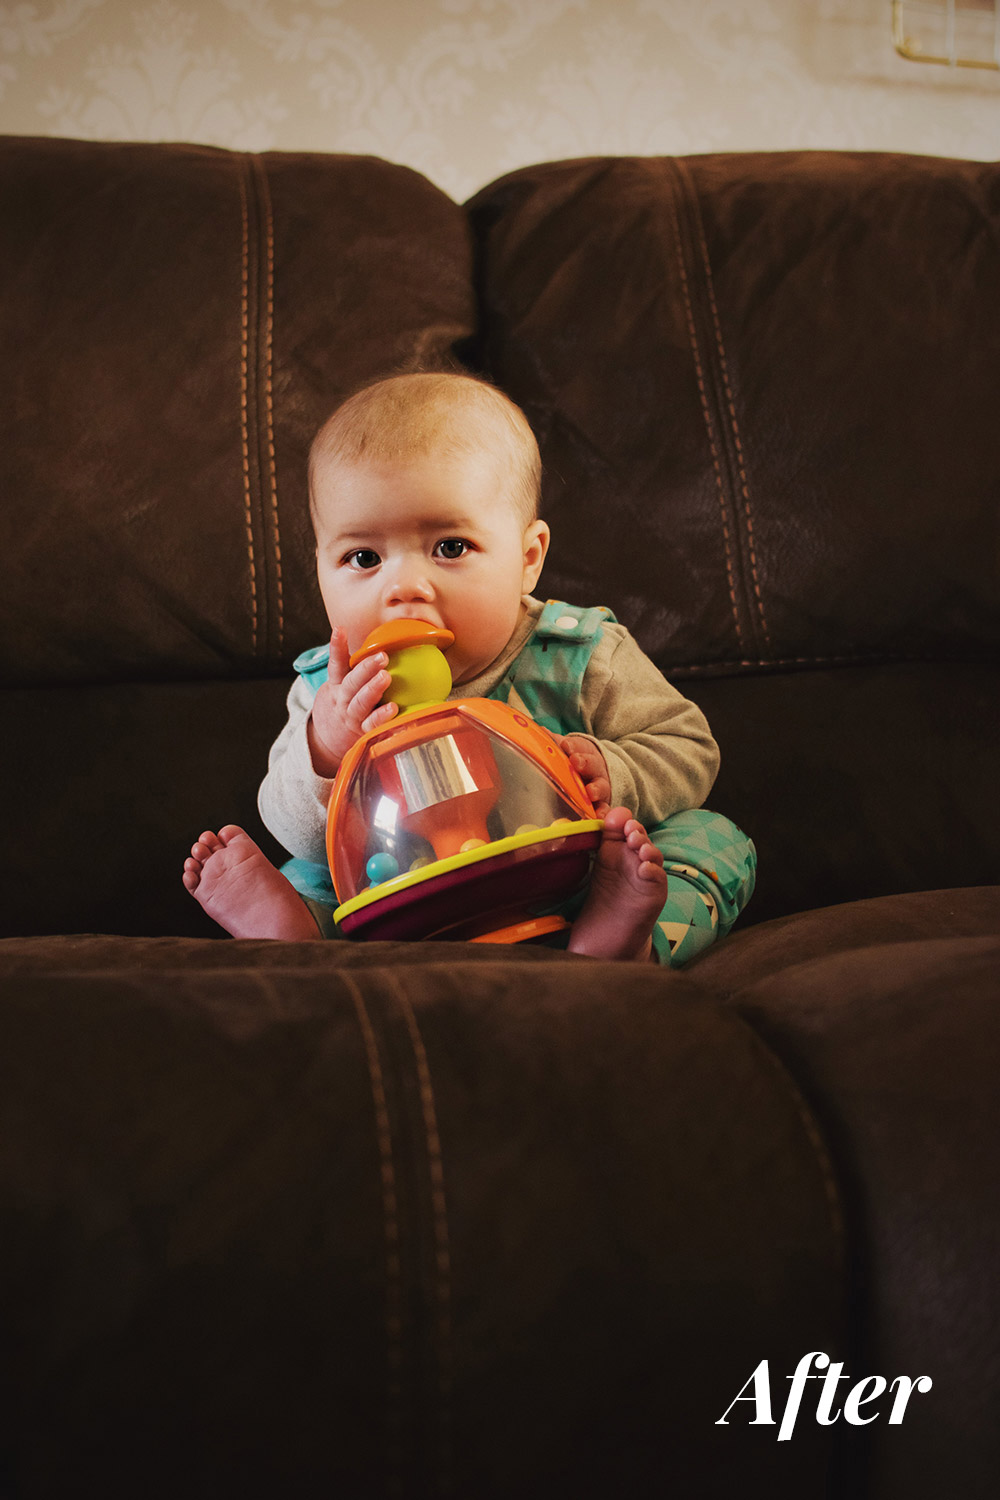 How to take good photos in crap lighting - photography tips and tricks for taking photos indoors of kids